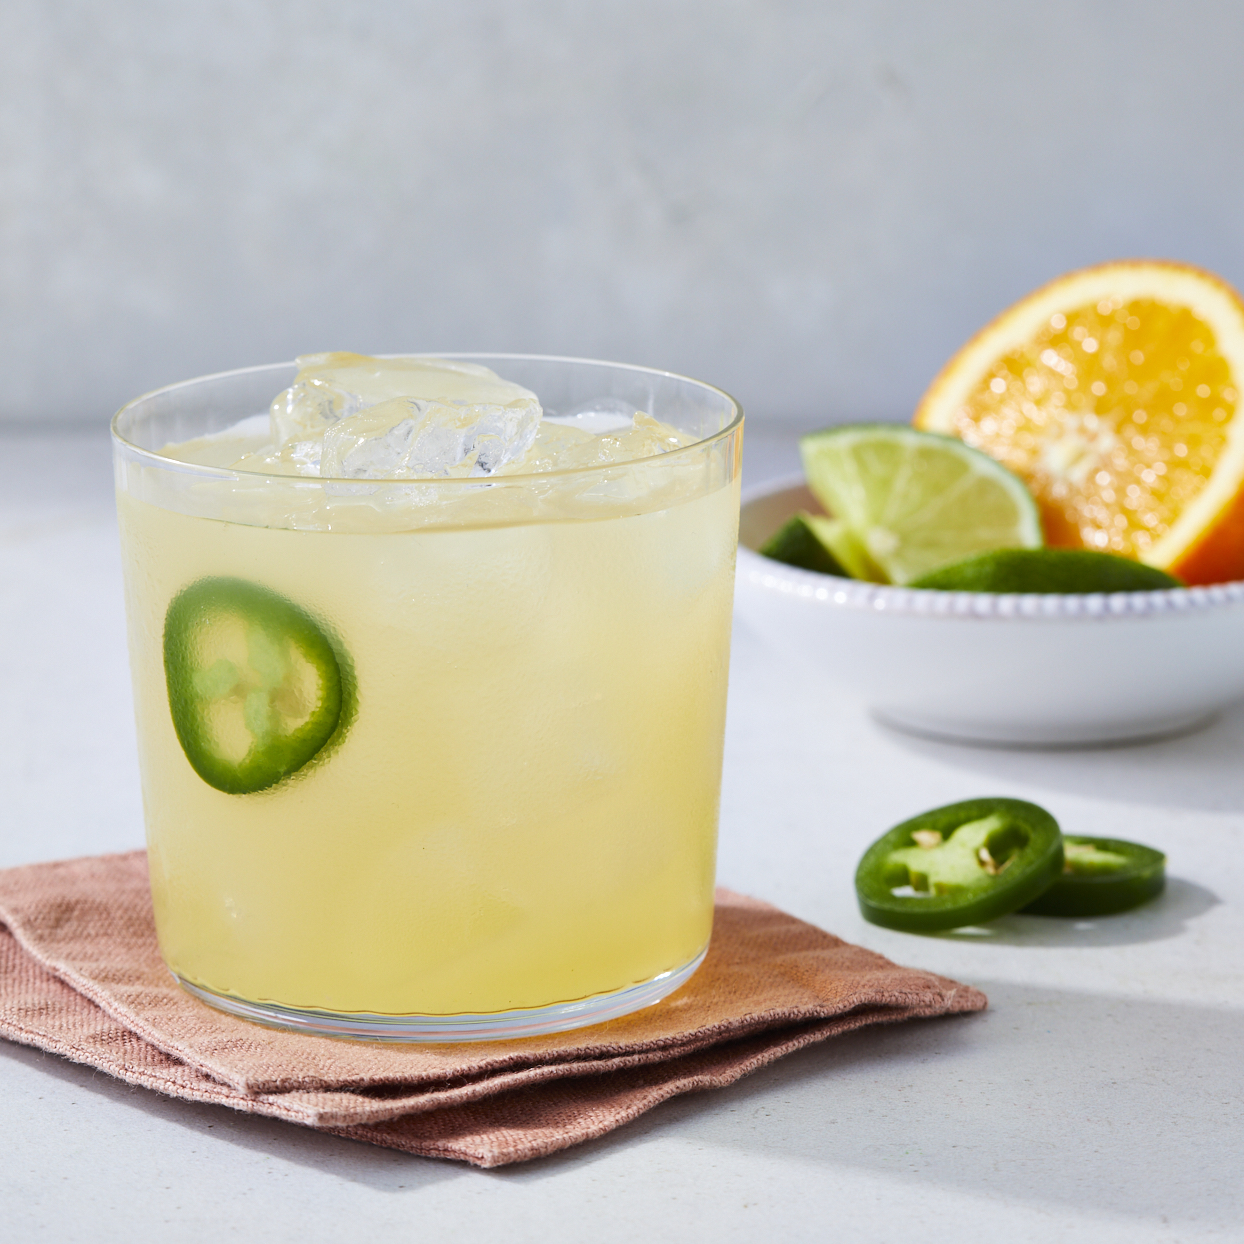 margarita in a cocktail glass garnished with jalapeno slices and citrus slices